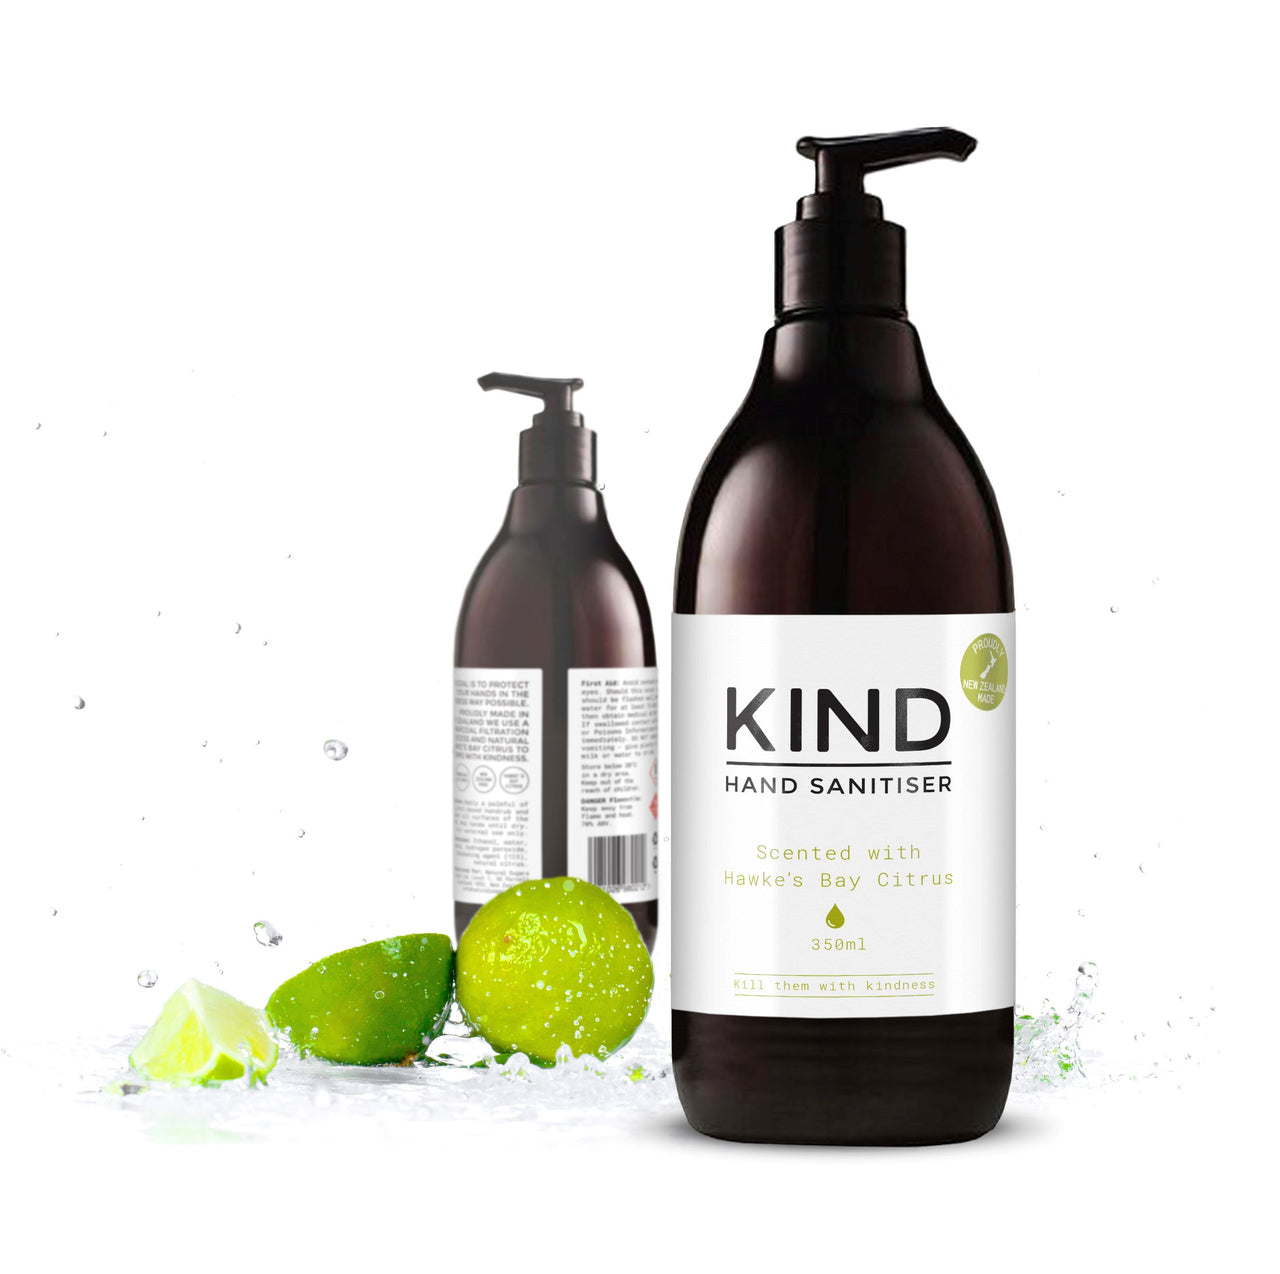 KIND Hand Sanitiser